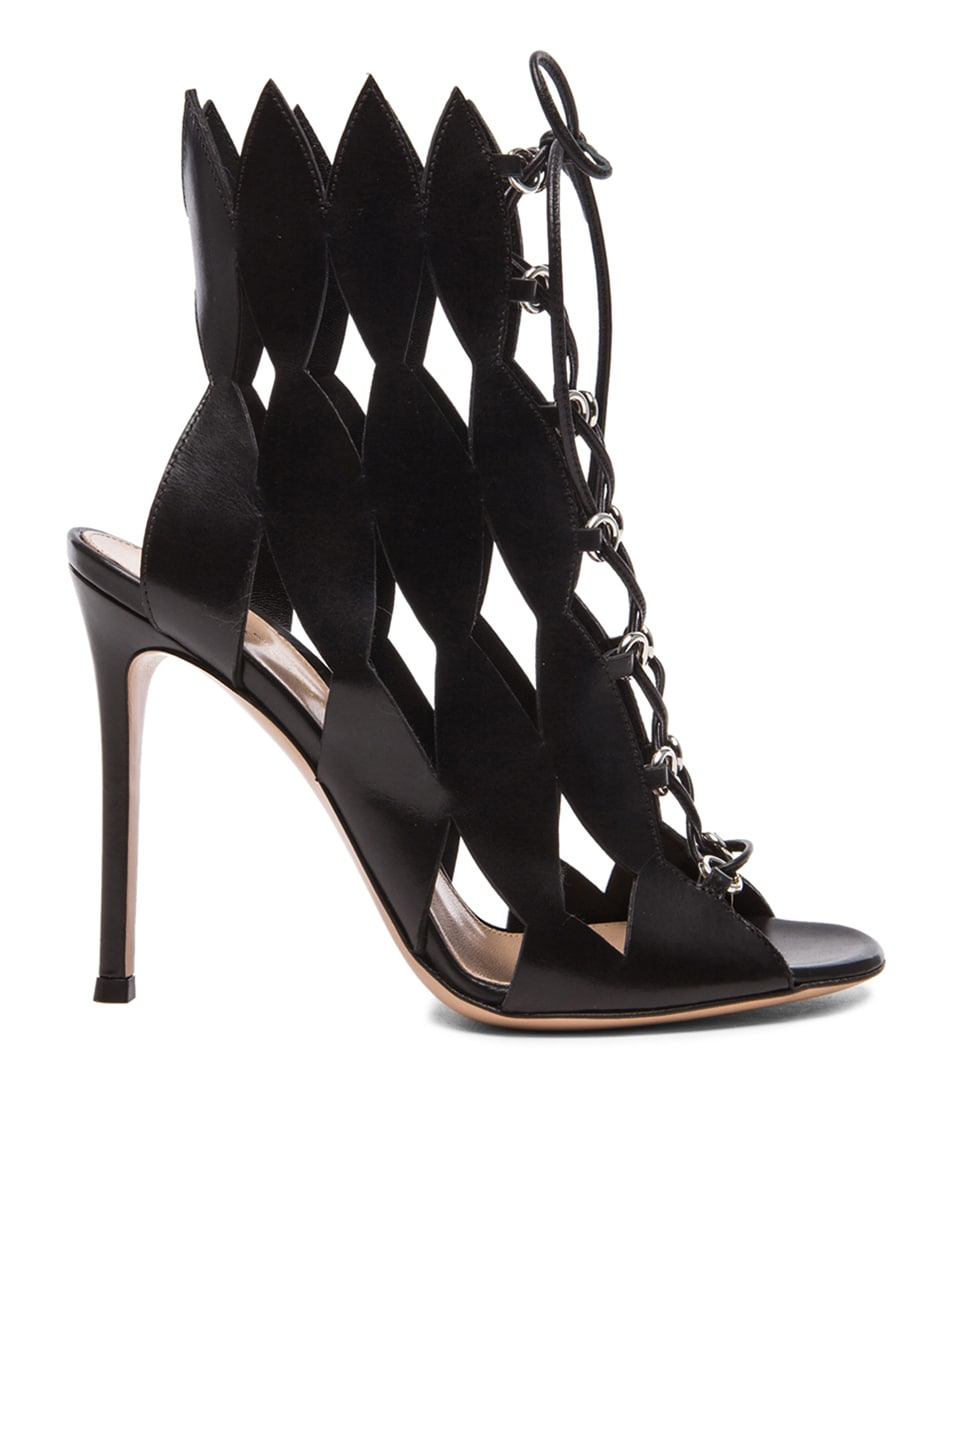 Image 1 of Gianvito Rossi Leather Cut Out Heels in Black